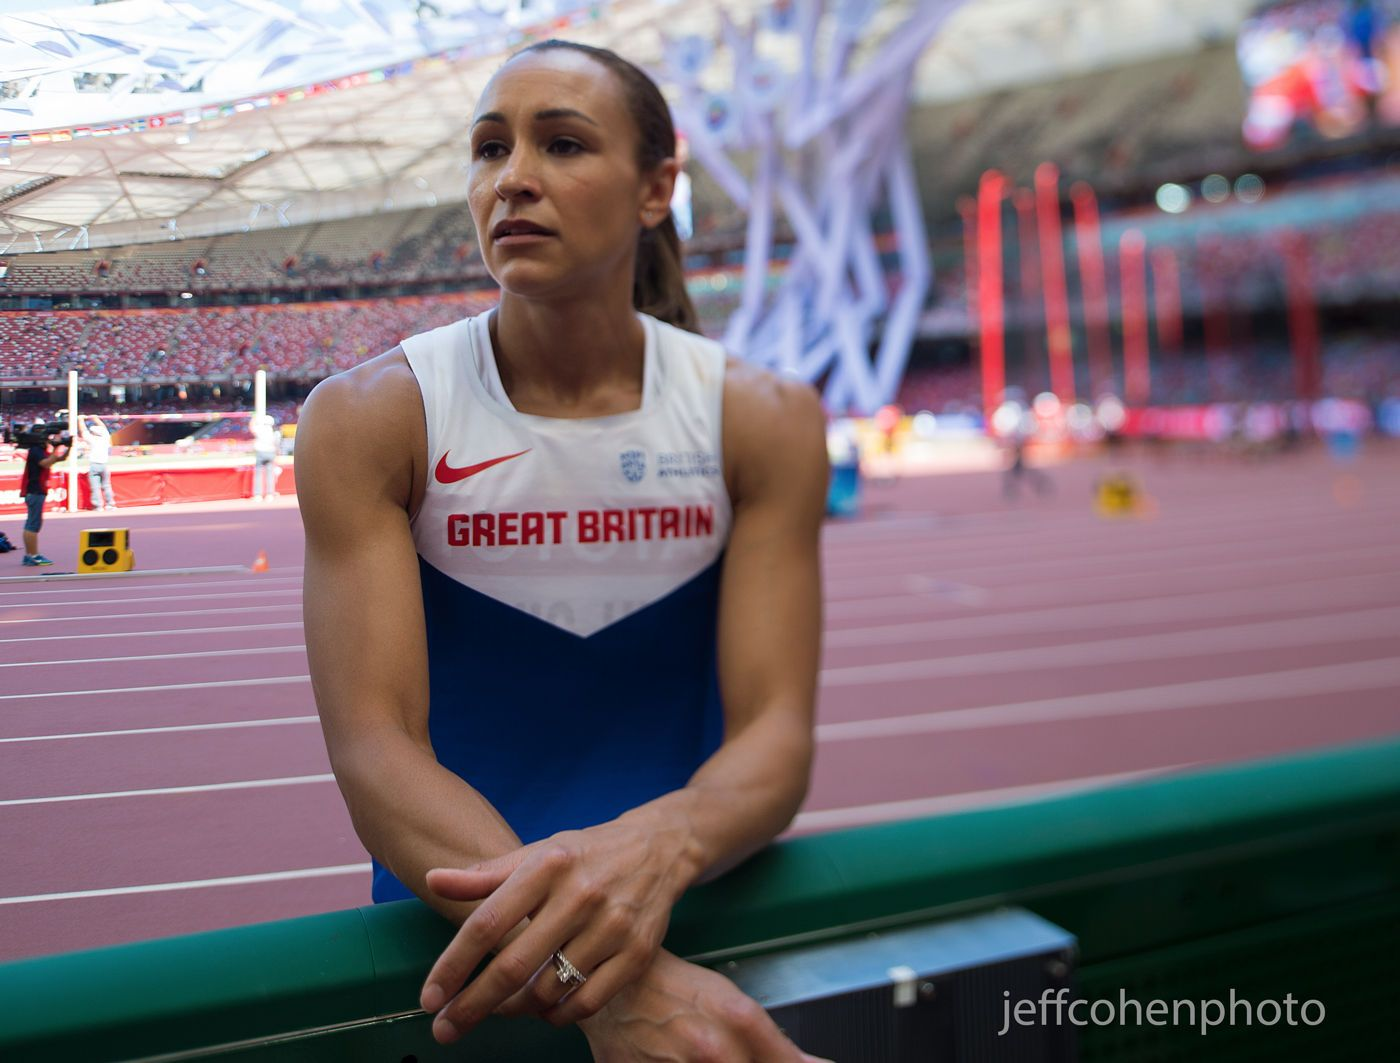 1beijing2015_day1_jessica_ennis_hill_hept_hj_port_jeff_cohen_photo_112_web.jpg